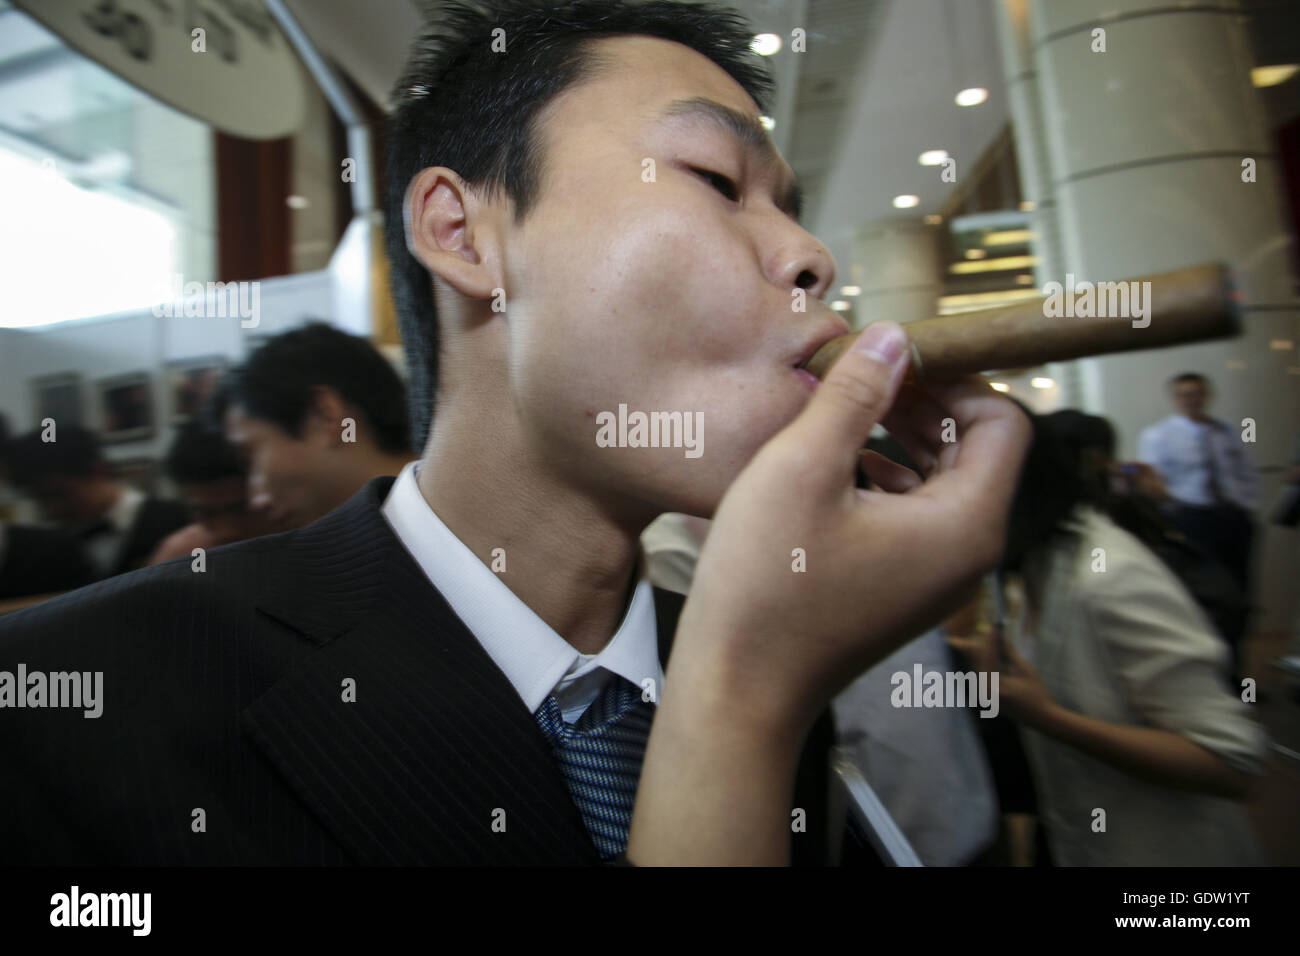 A man try out a cigar at a trade fair - Stock Image